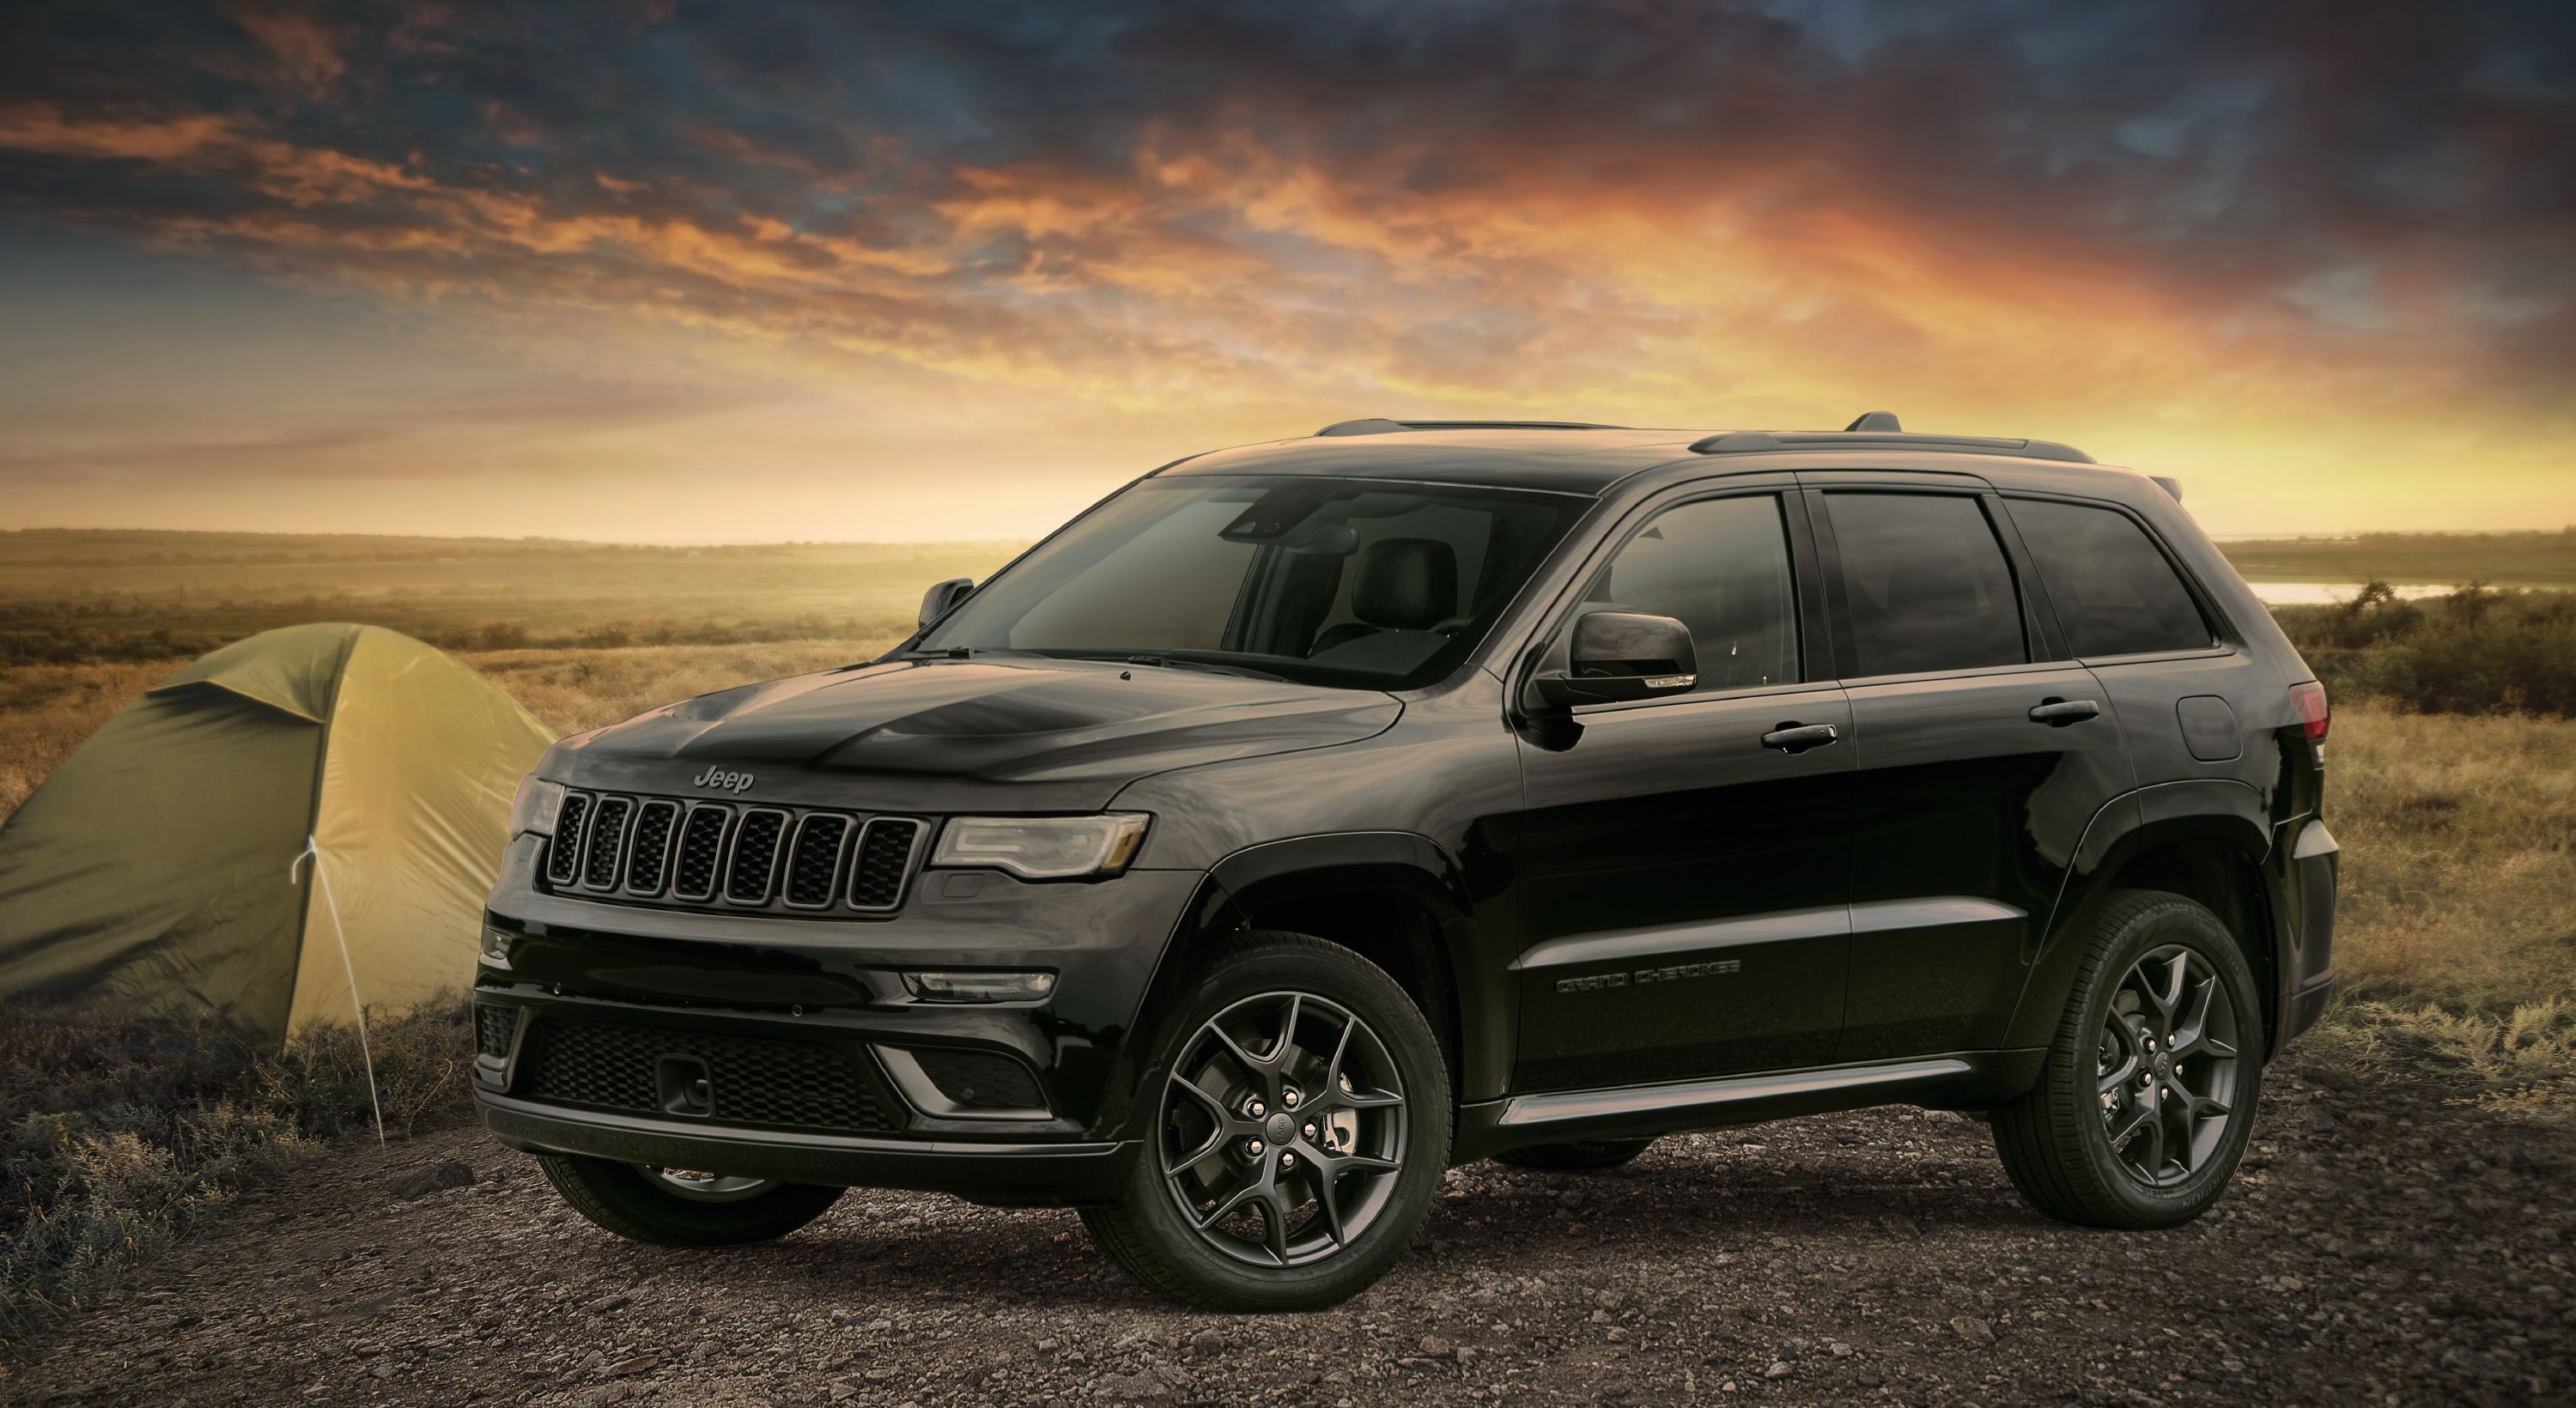 jeep wrangler 4 0 2 4l engine diagram 2020 jeep grand cherokee review  pricing  and specs  2020 jeep grand cherokee review